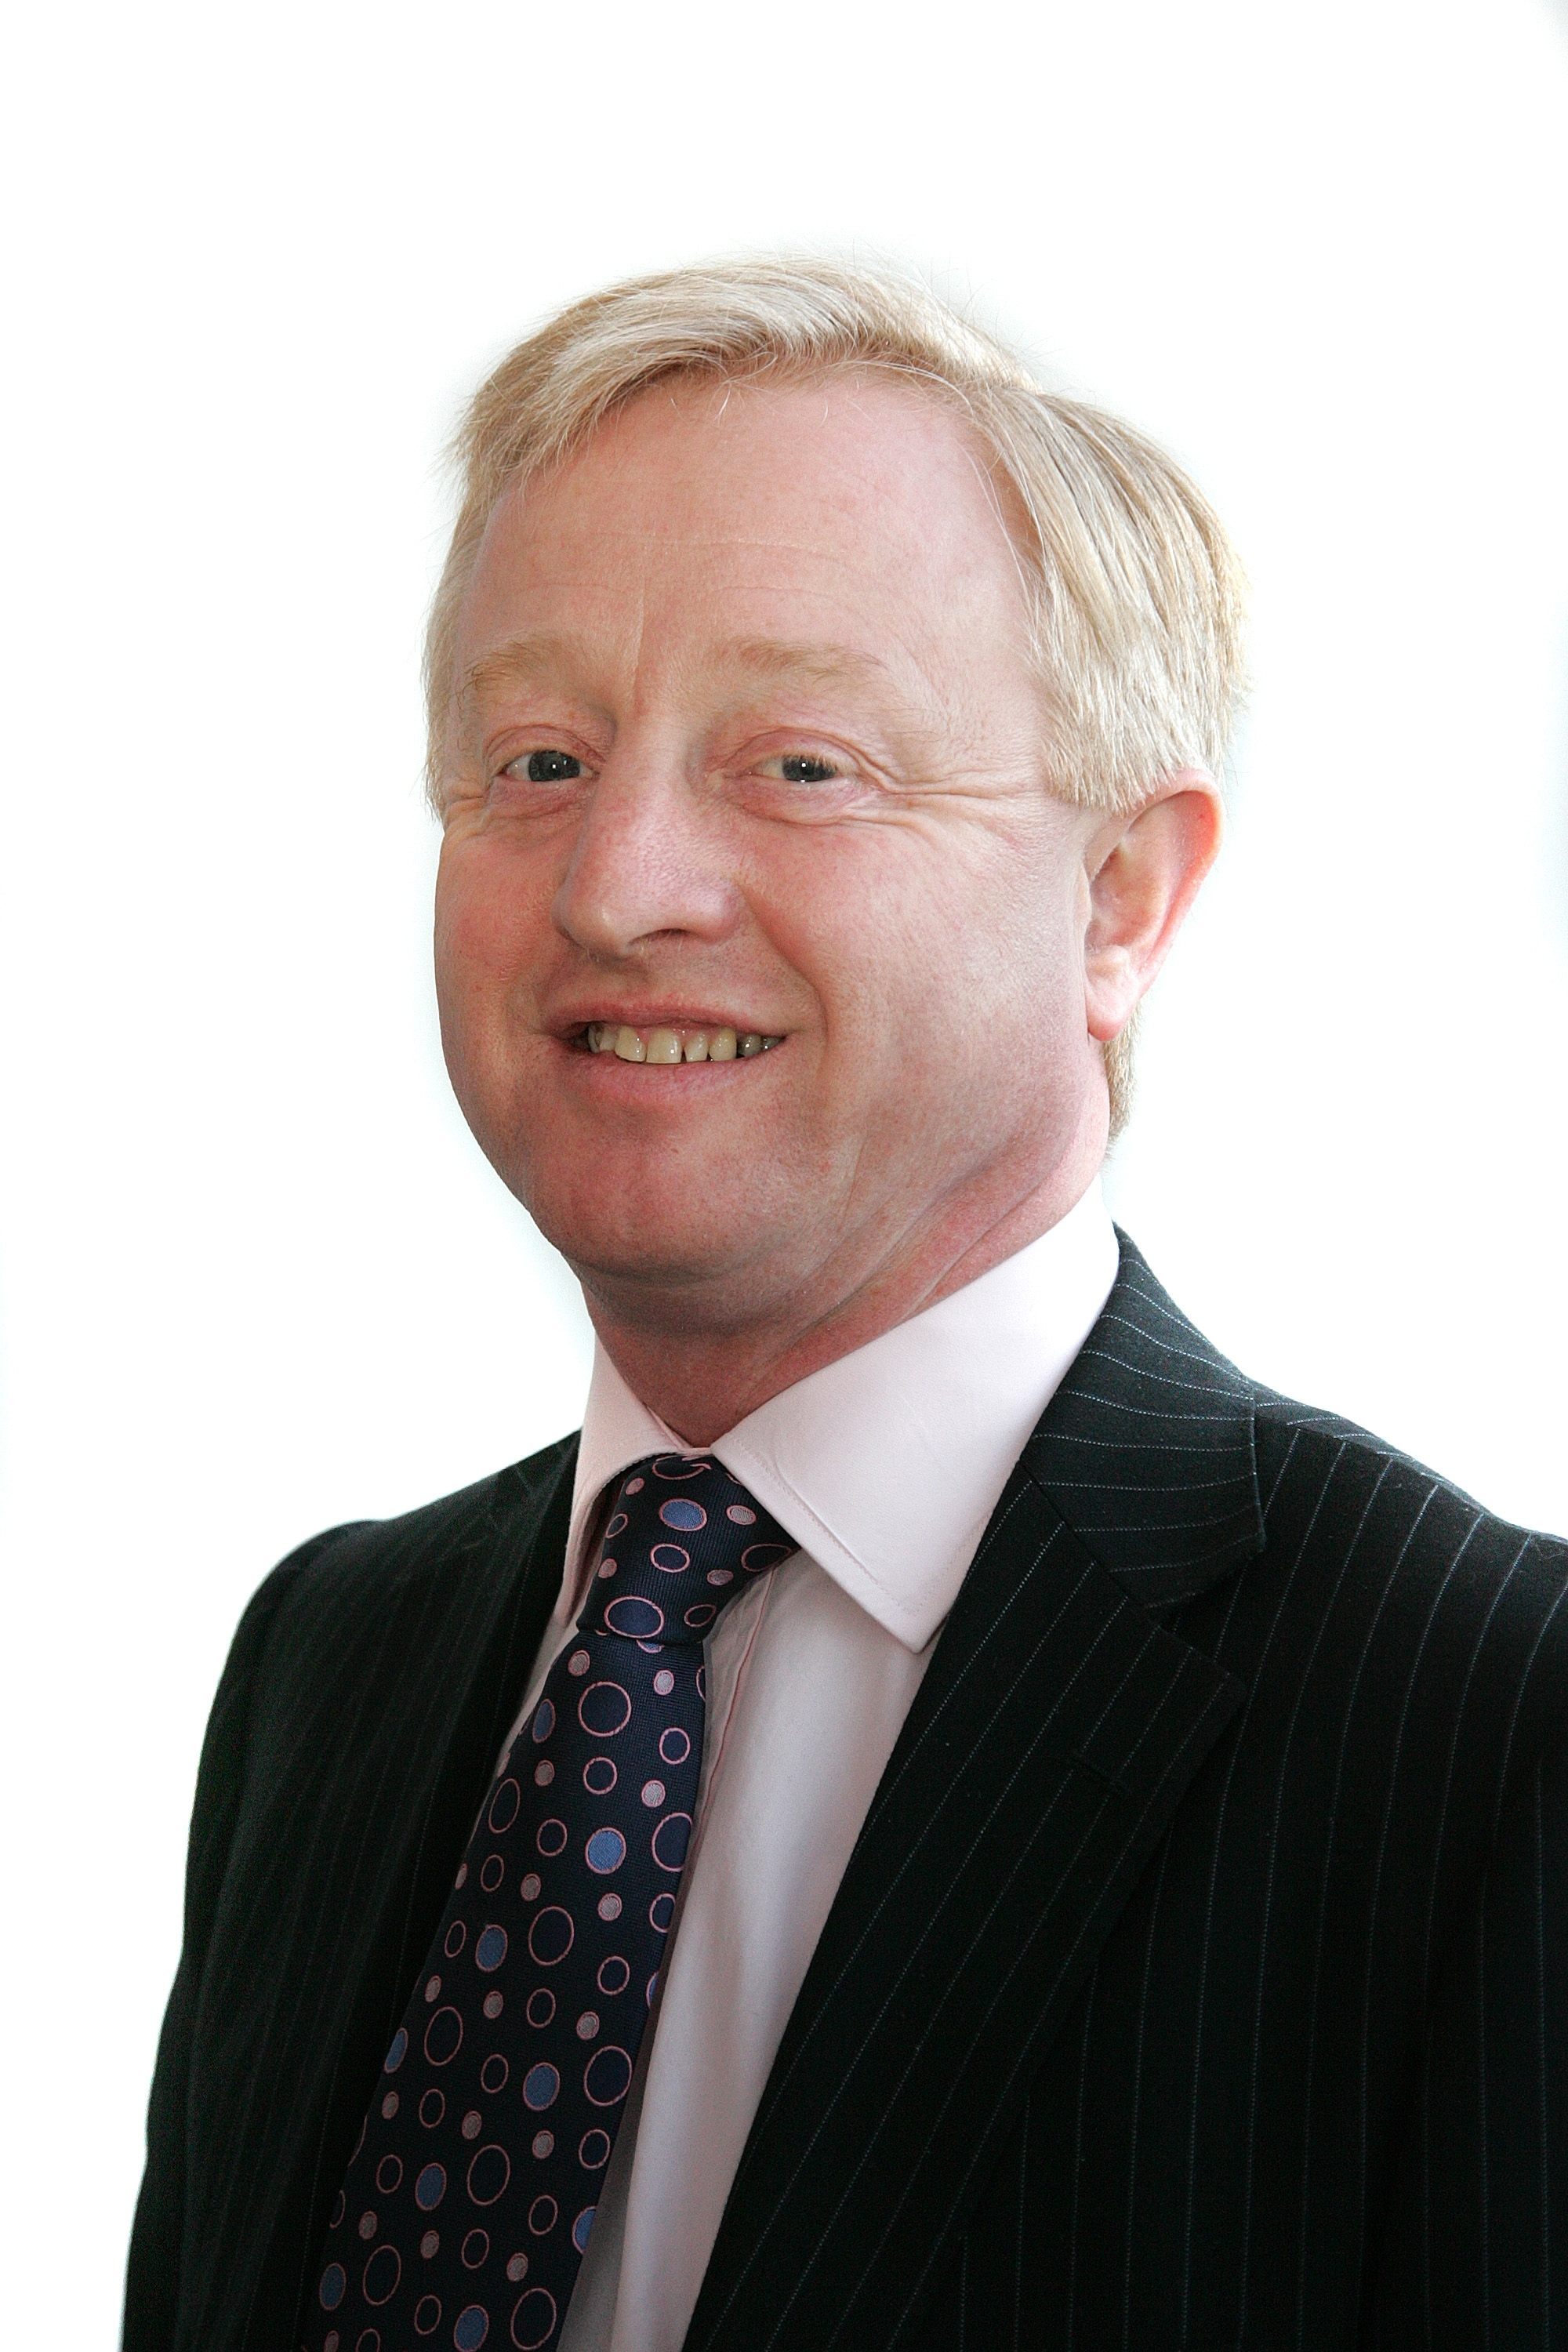 Chris Marston appointed chief executive of LawNet April 2014